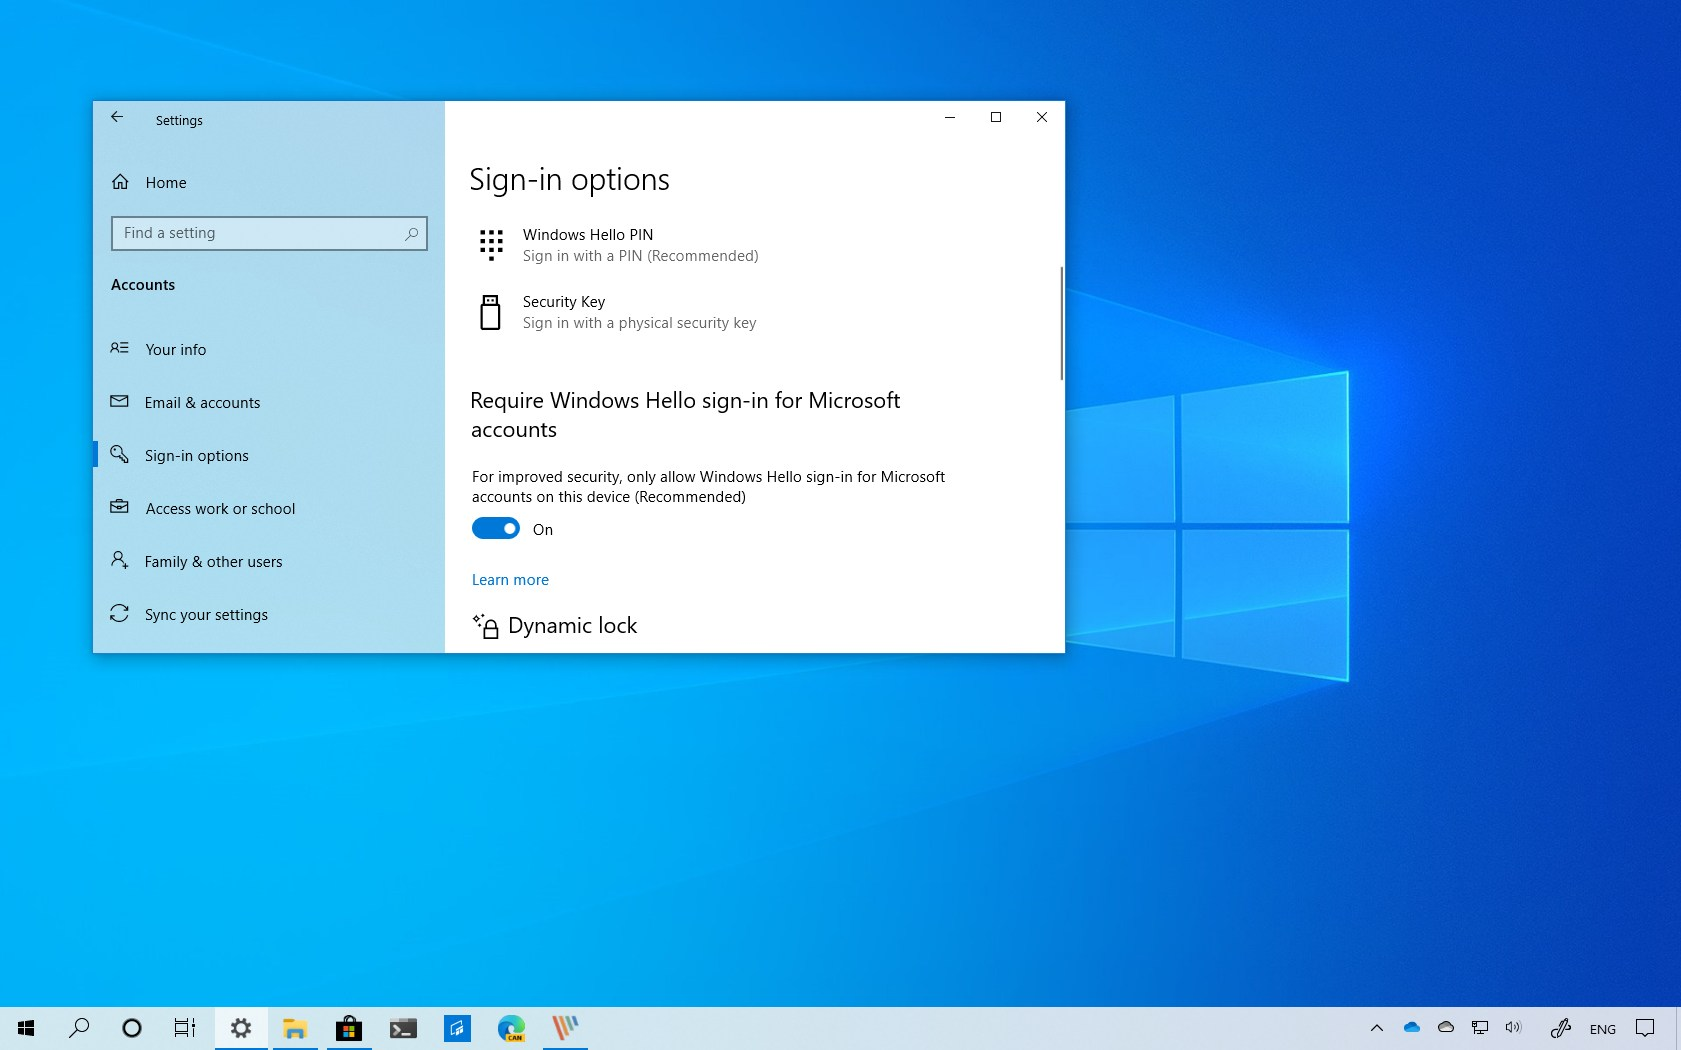 Remove password and require only Windows Hello for sign-in option